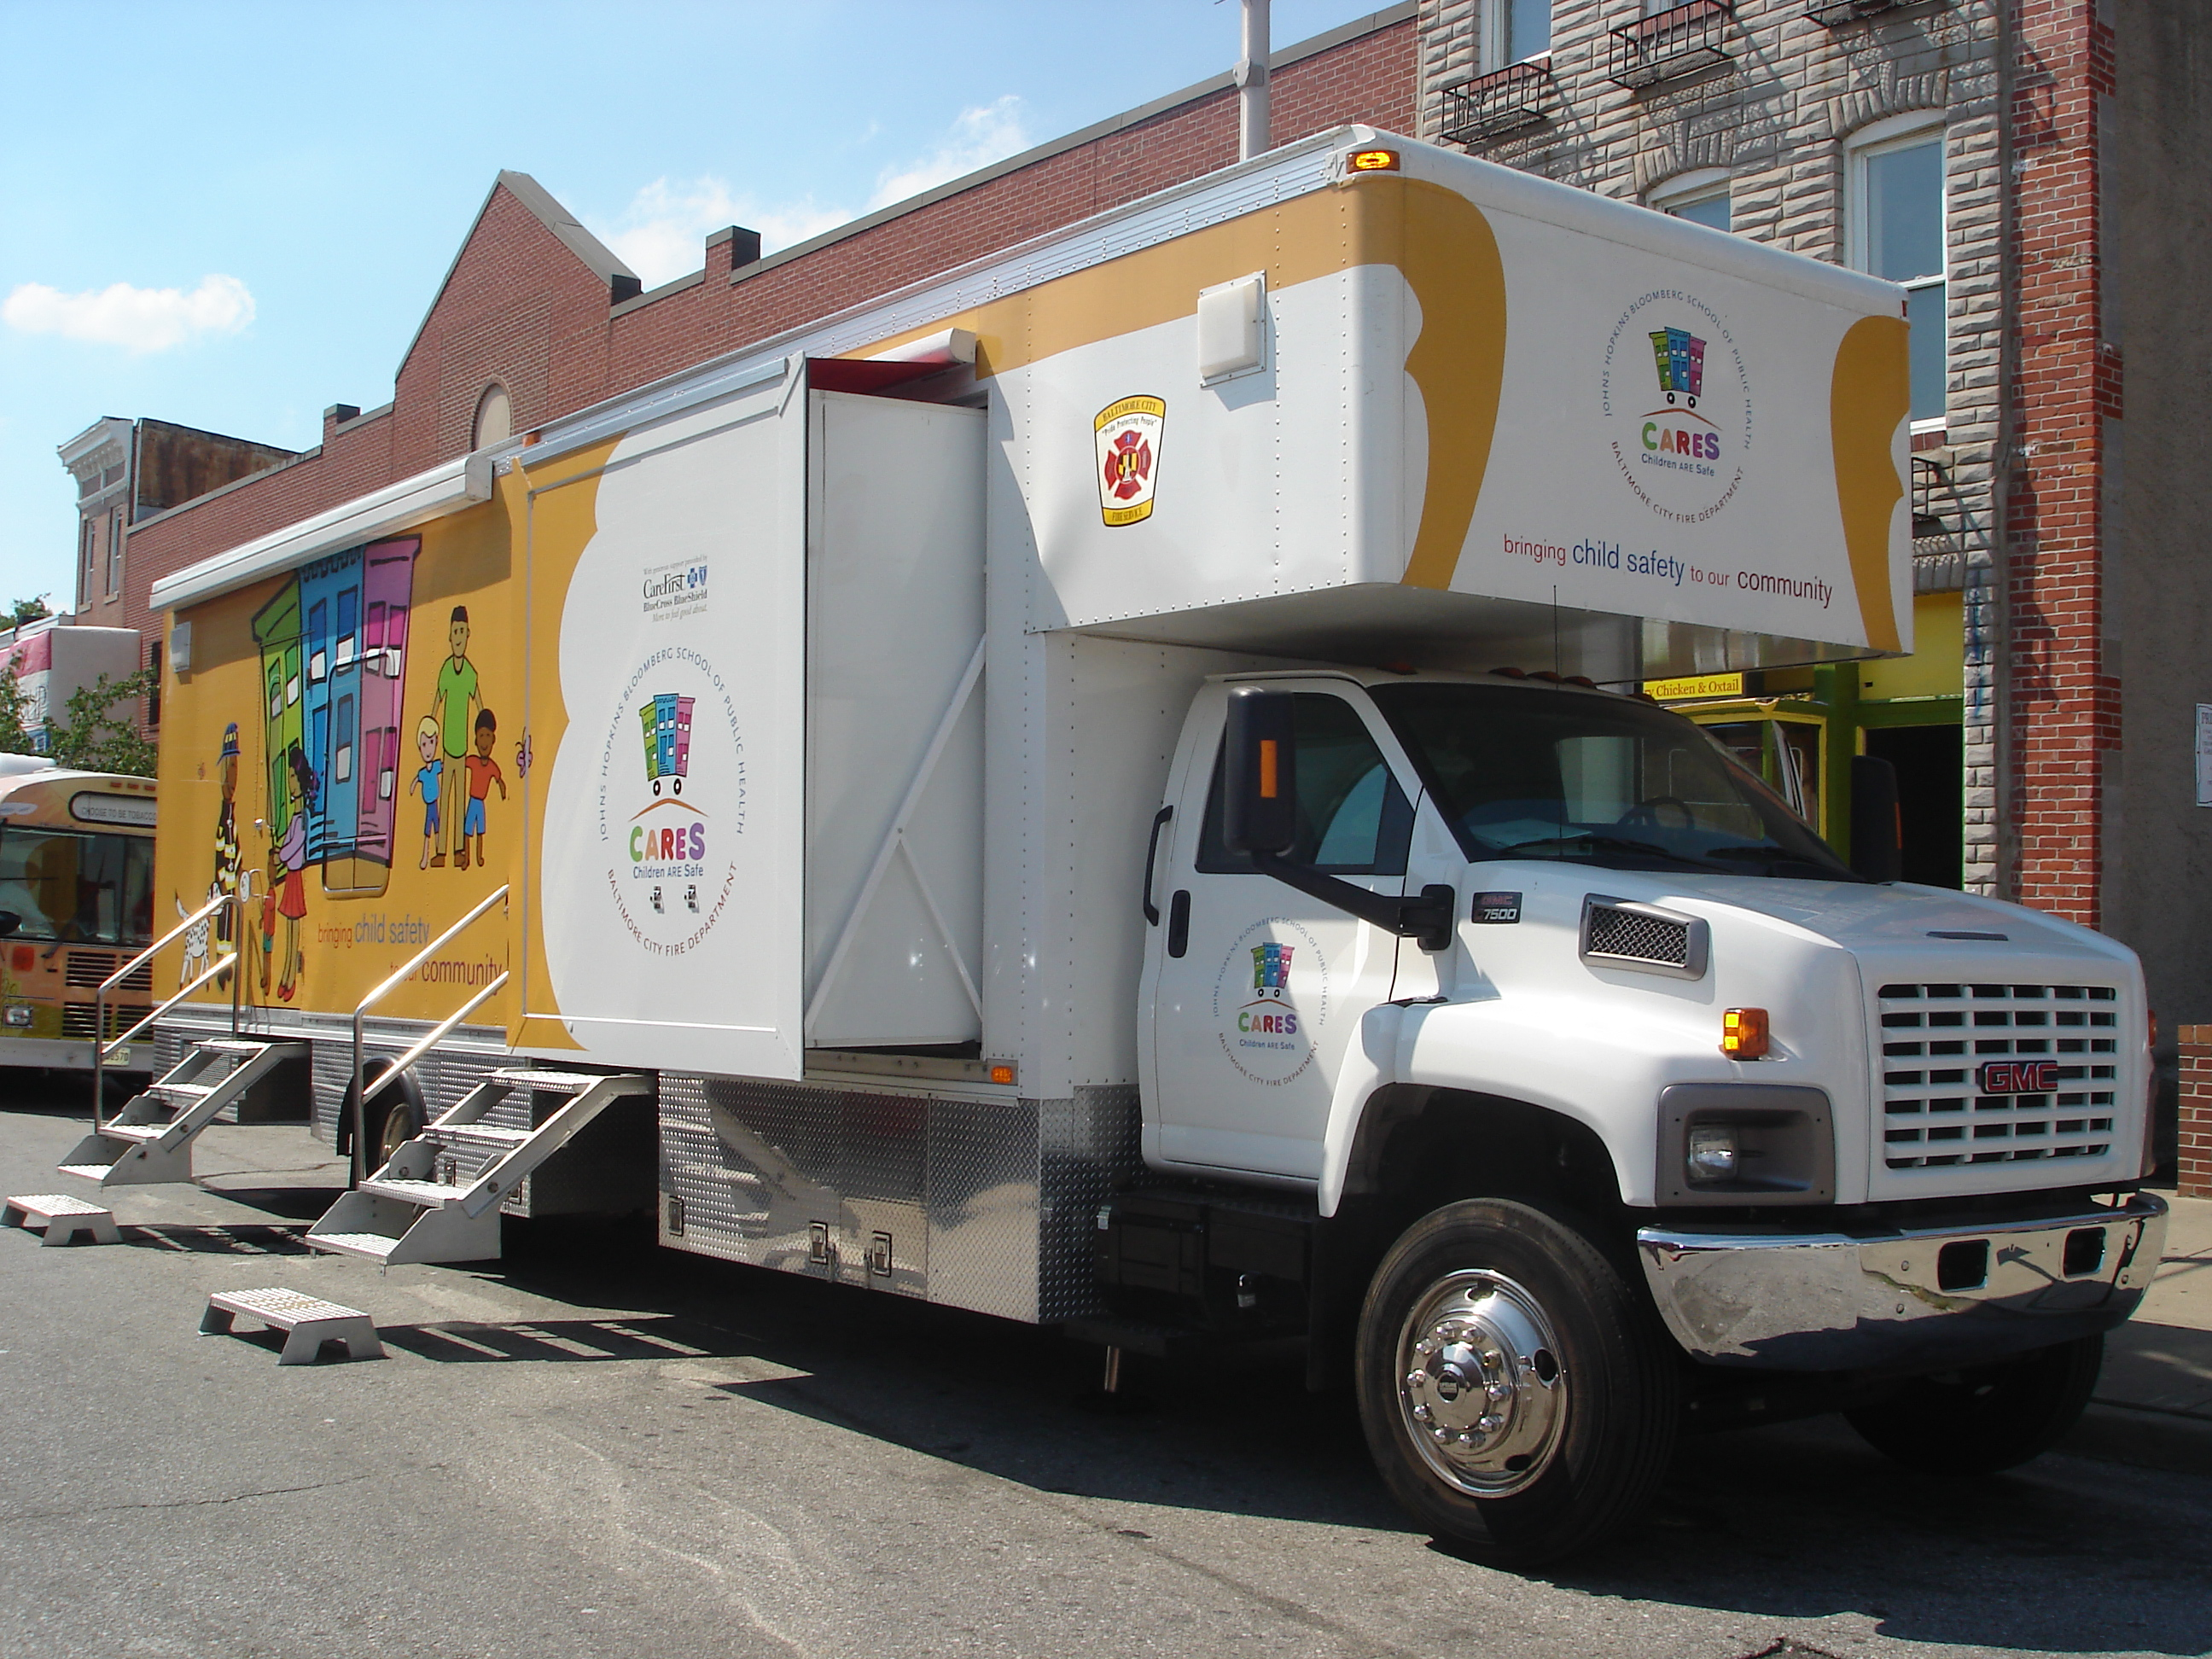 CARES-Mobile-Safety-Center-photo